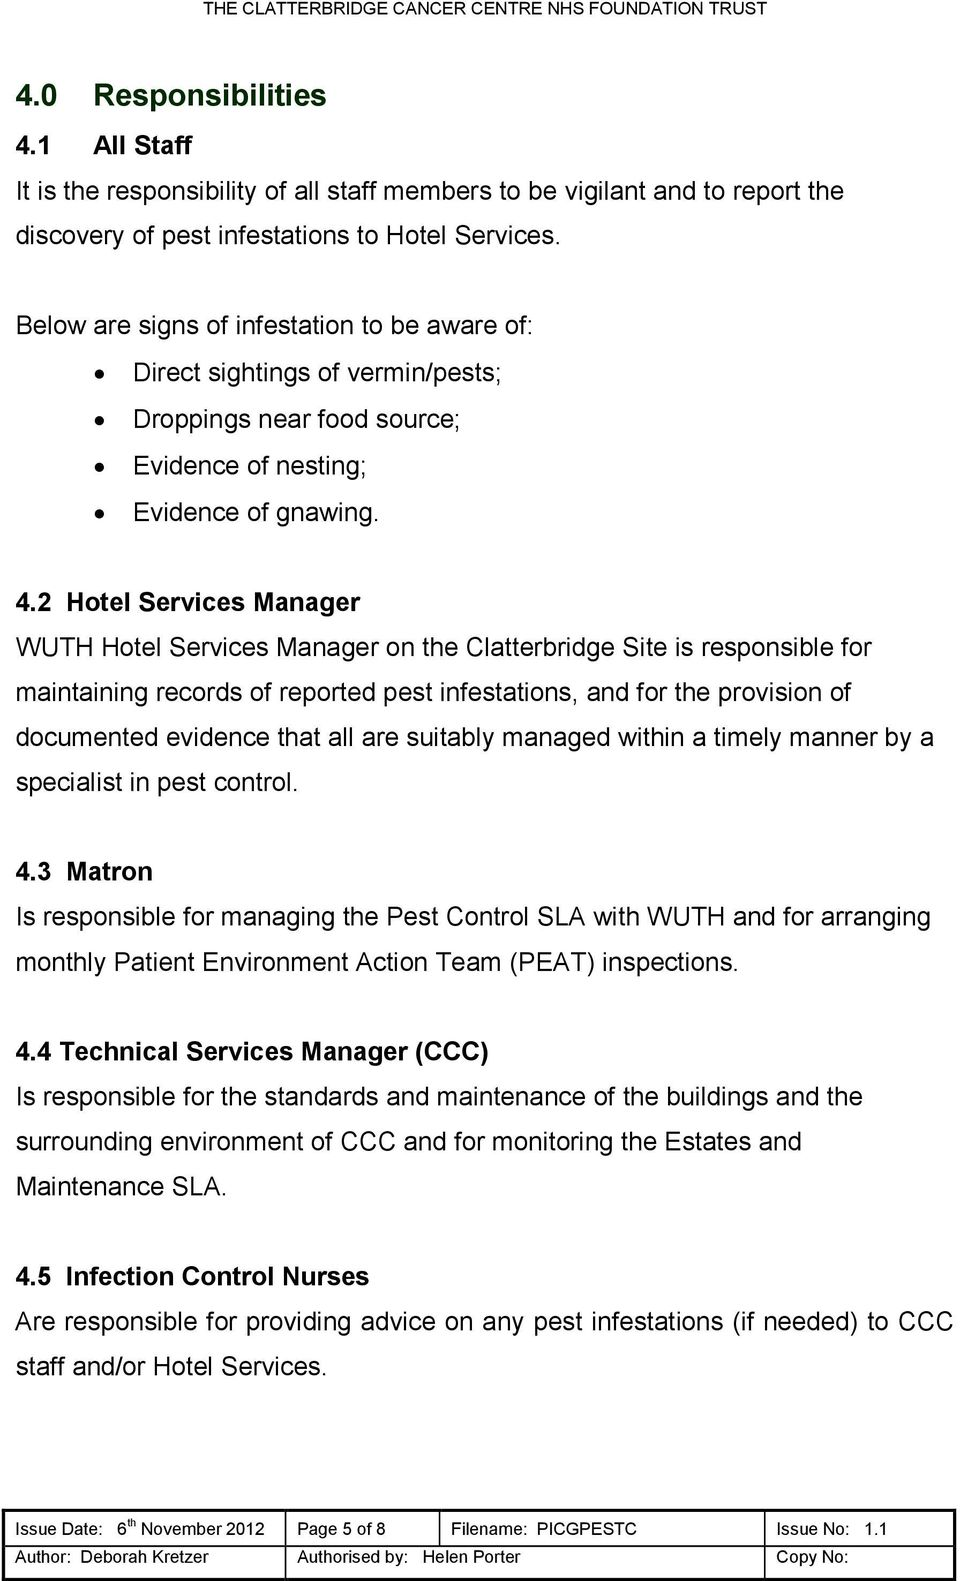 2 Hotel Services Manager WUTH Hotel Services Manager on the Clatterbridge Site is responsible for maintaining records of reported pest infestations, and for the provision of documented evidence that